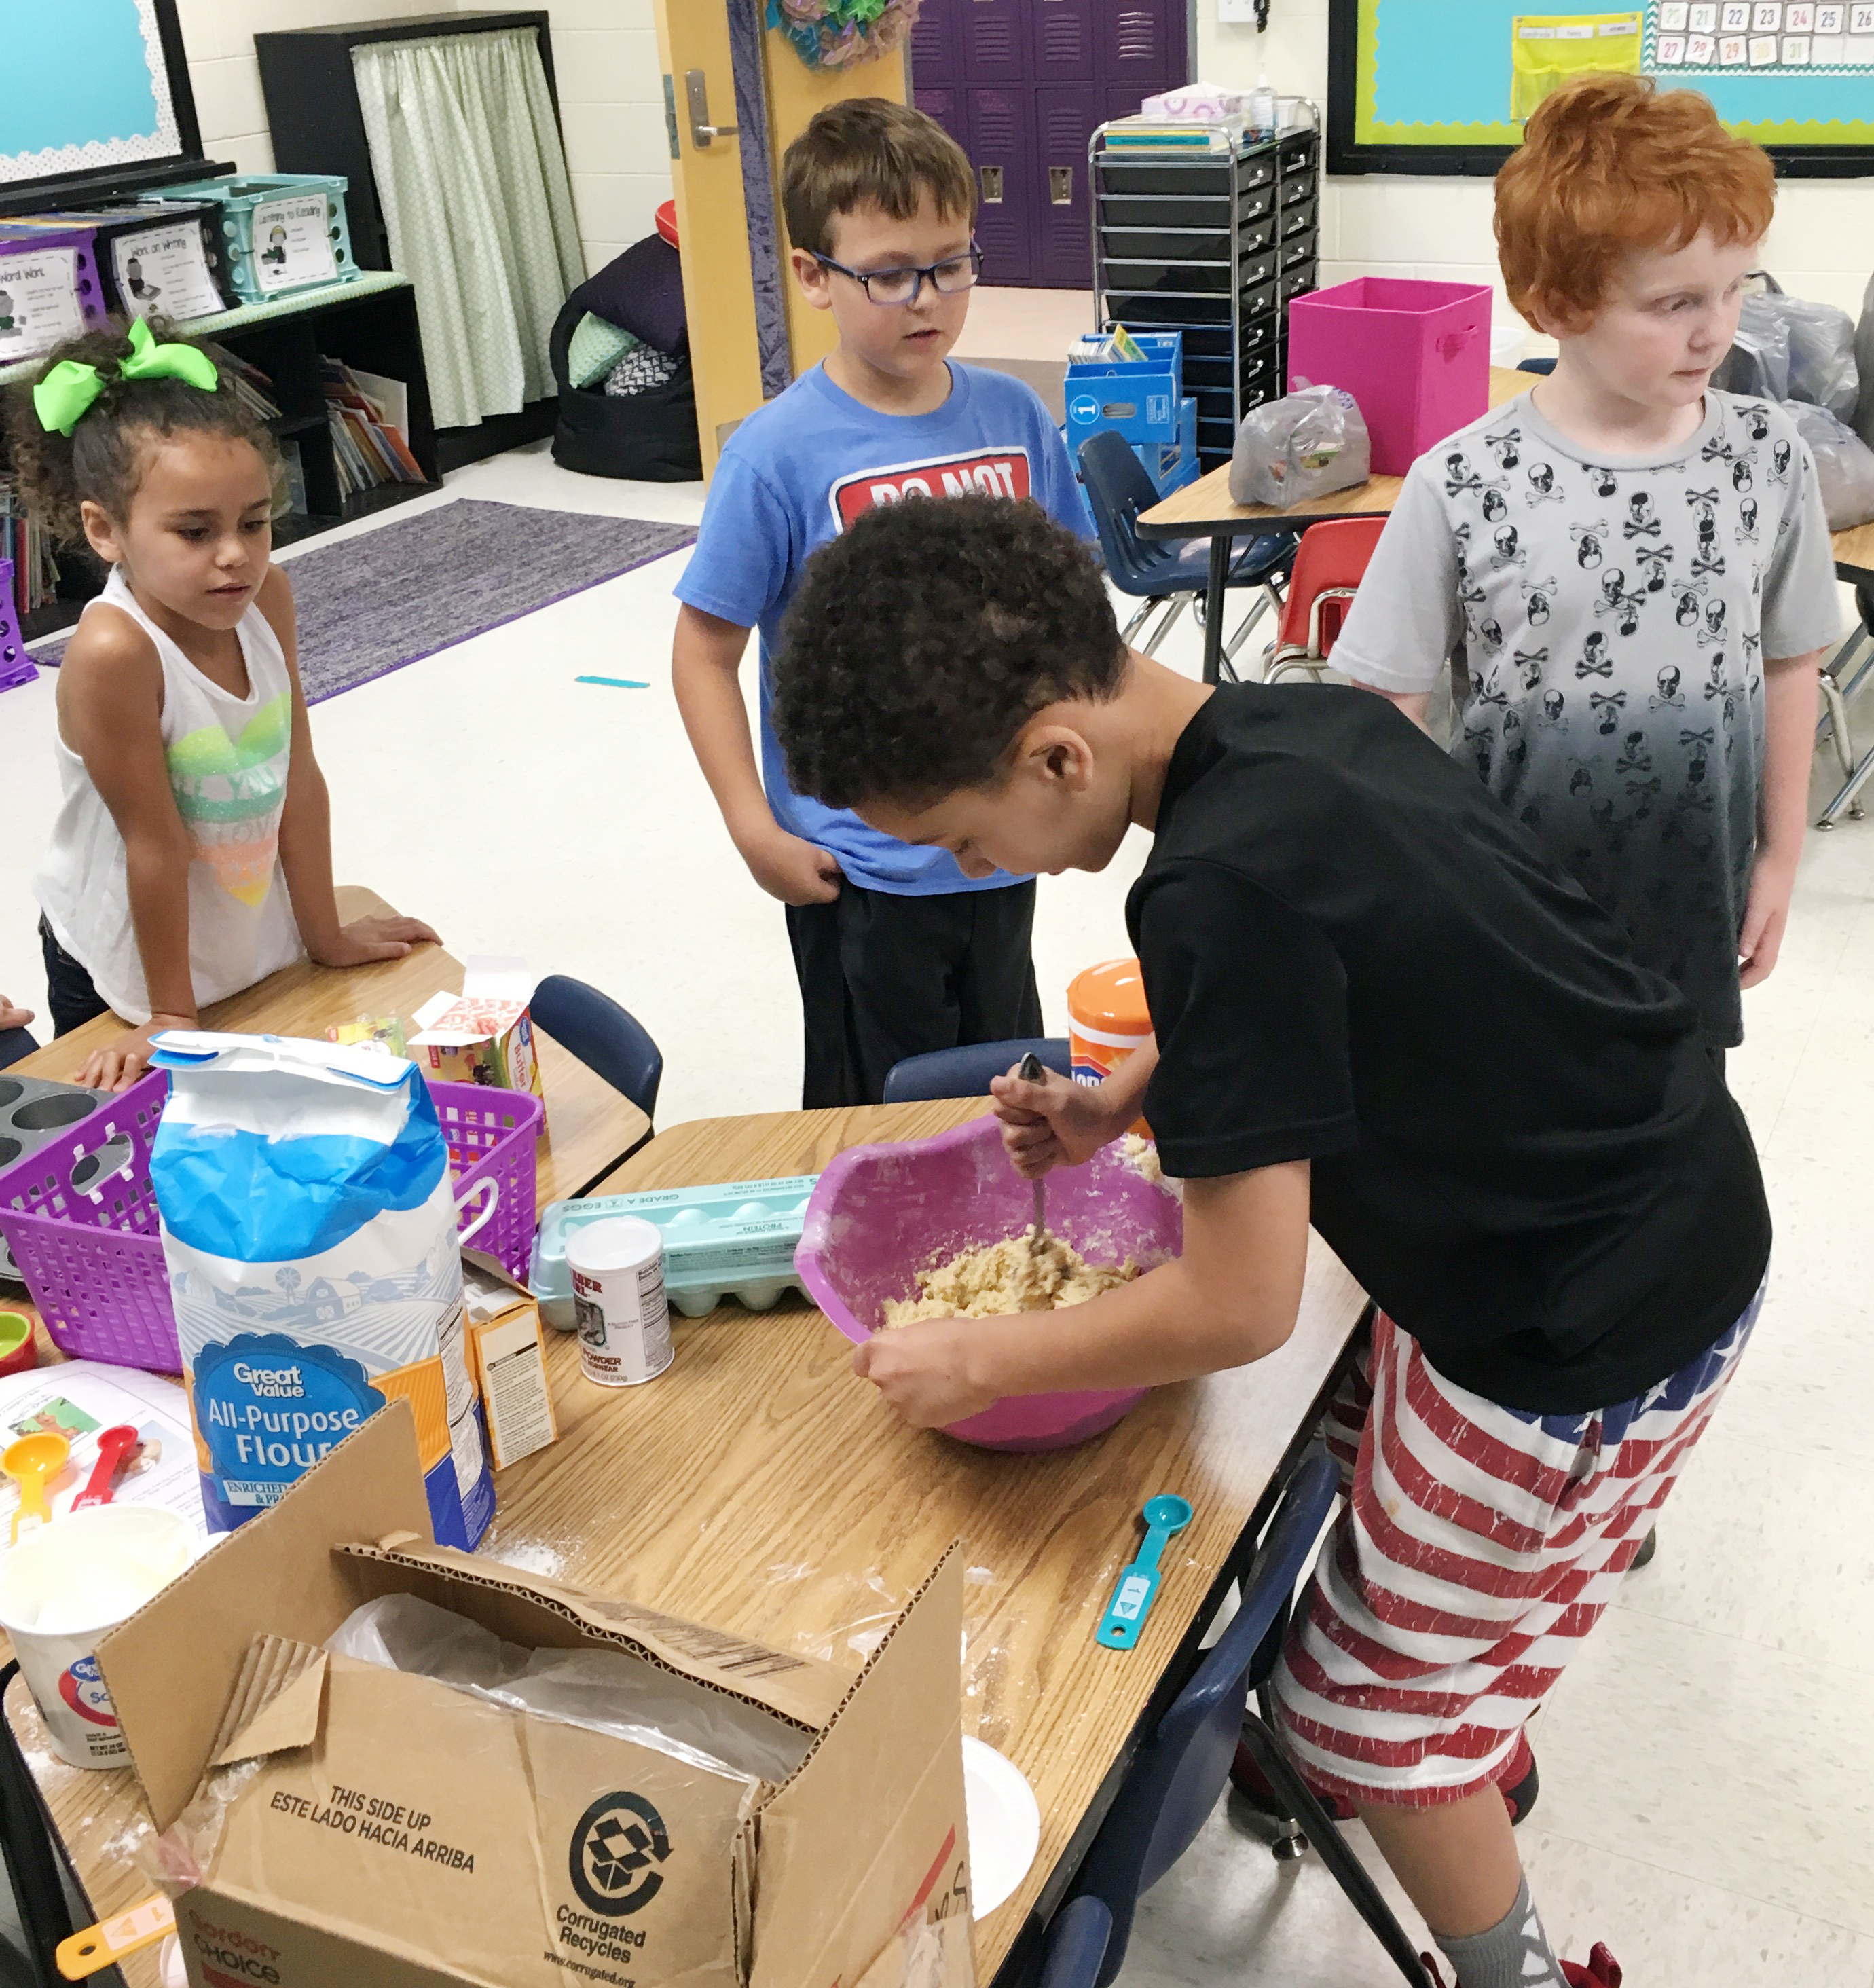 CES second-grader Bryant Mayo mixes ingredients to make homemade muffins.